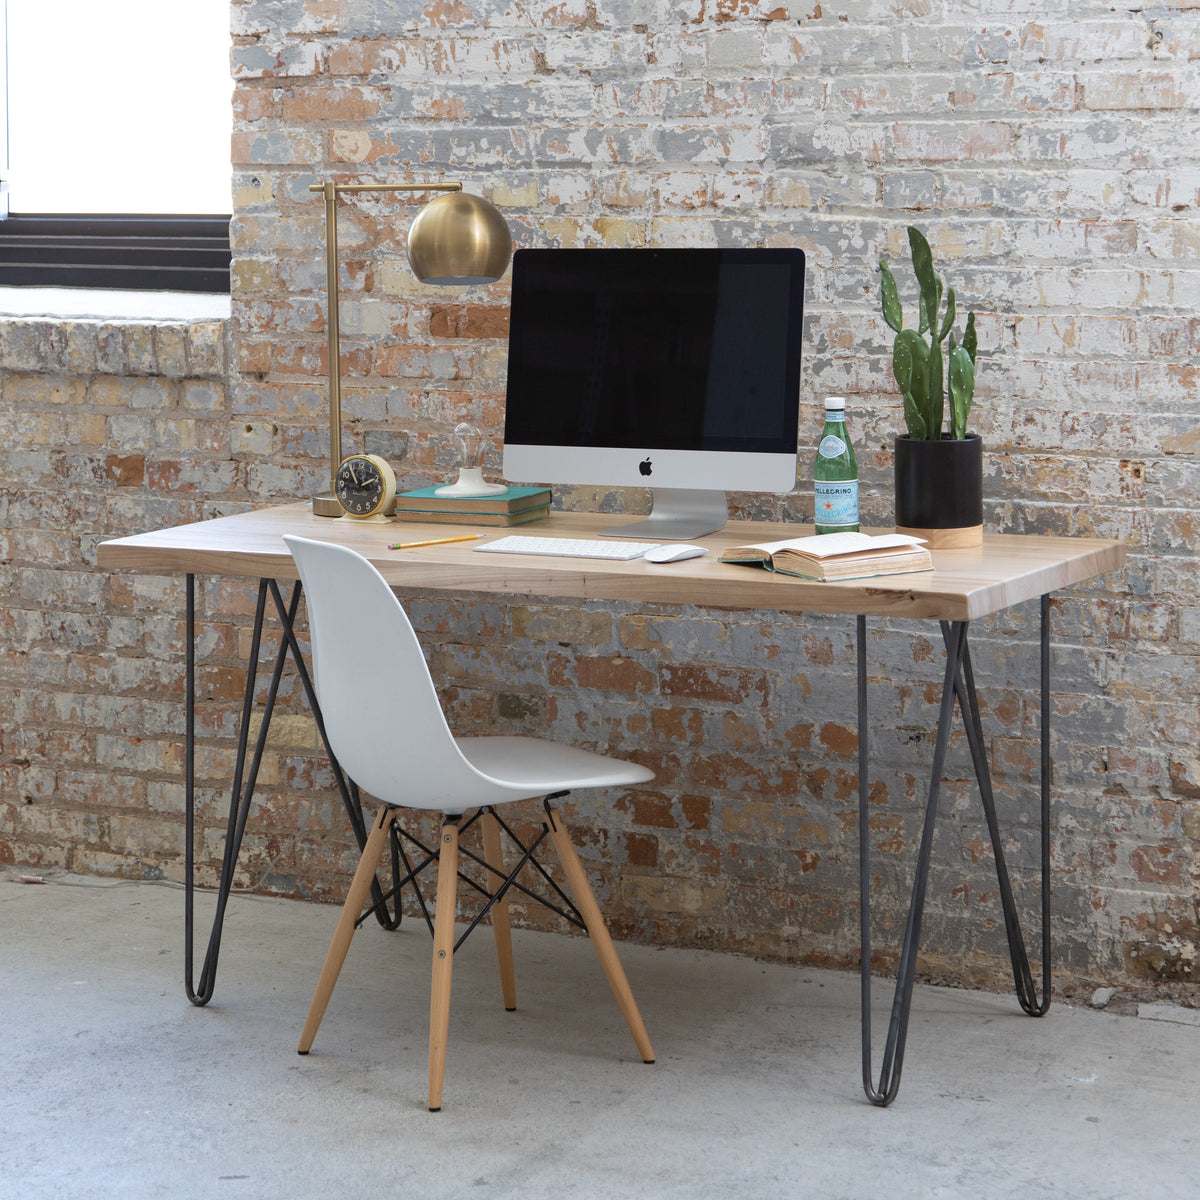 Dakota Timber Co Computer Desk With Hairpin Legs | Wood Desk | Made in USA | Sustainable Furniture Brands